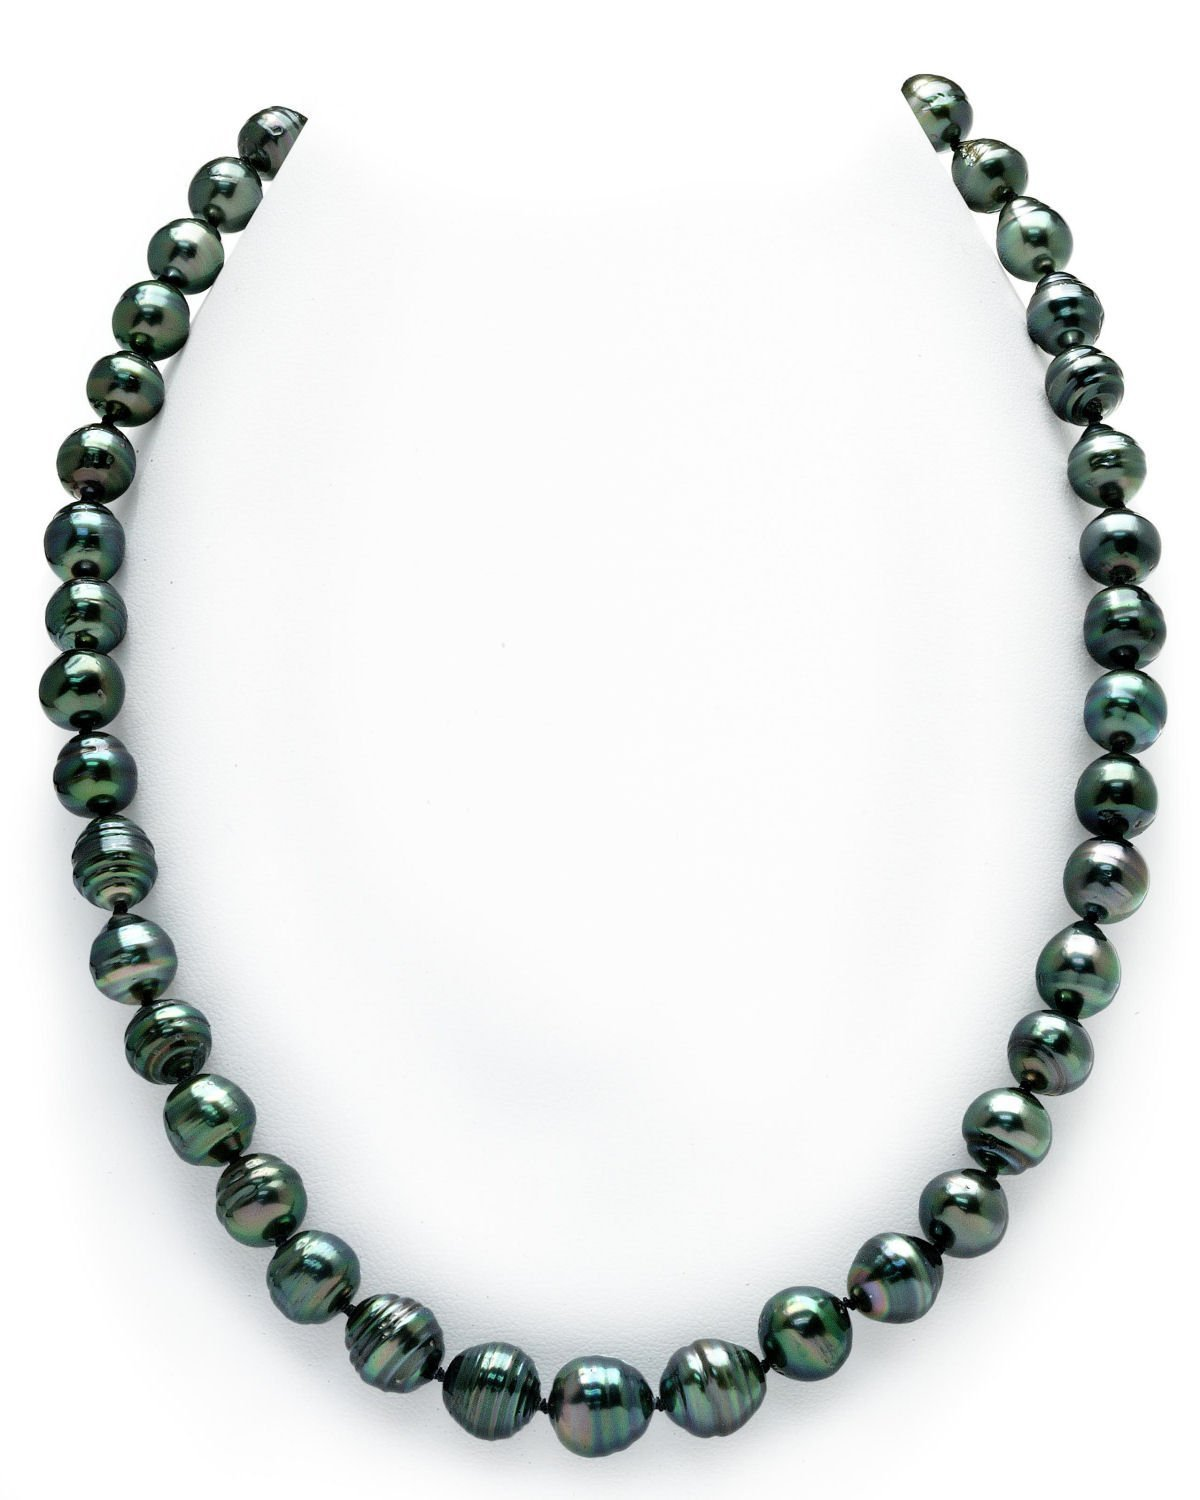 14K Gold 8-10mm Dark Tahitian South Sea Baroque Cultured Pearl Necklace - AAA Quality, 18'' Length